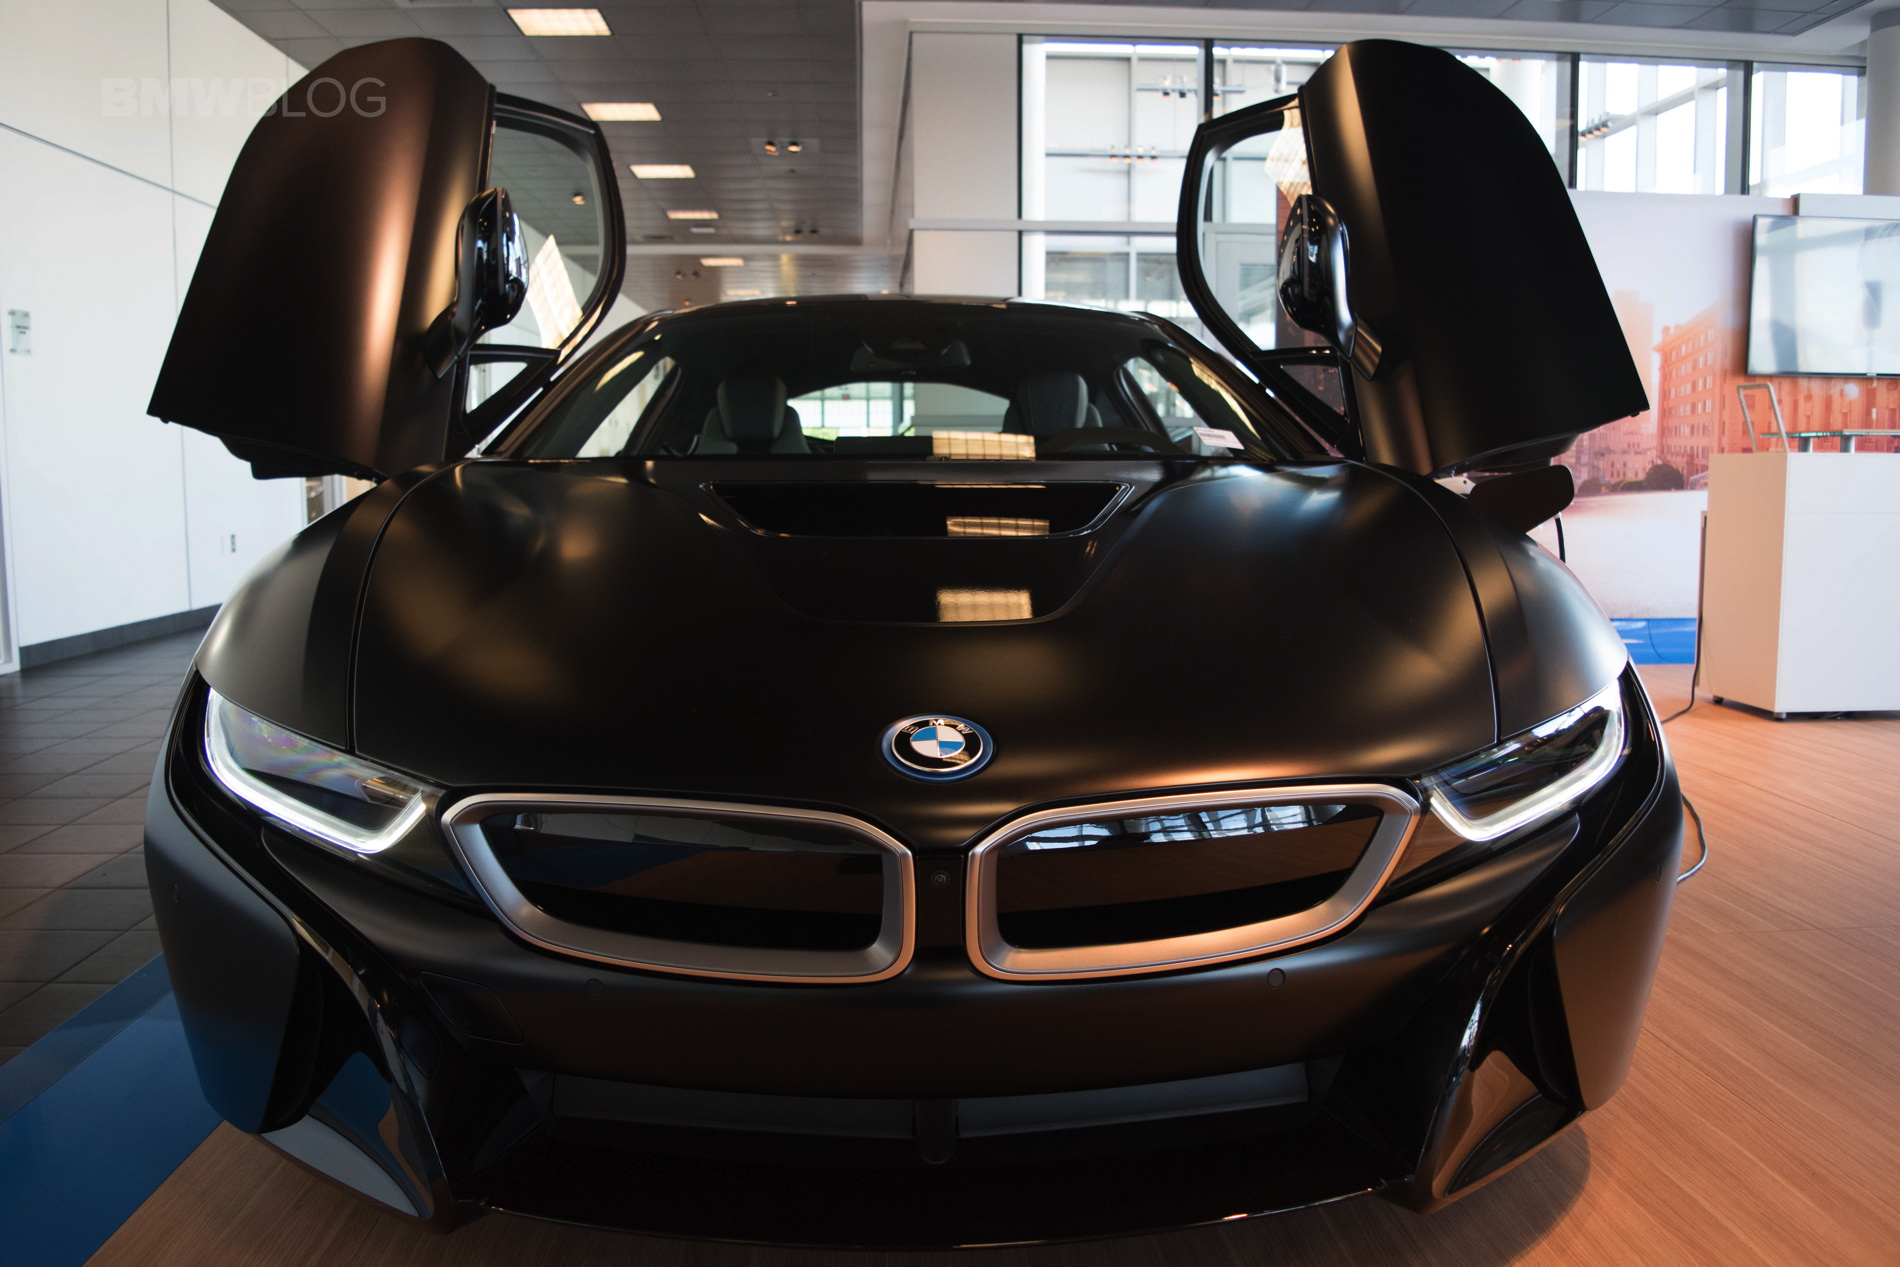 Two Bmw I8s That Shine In Different Ways